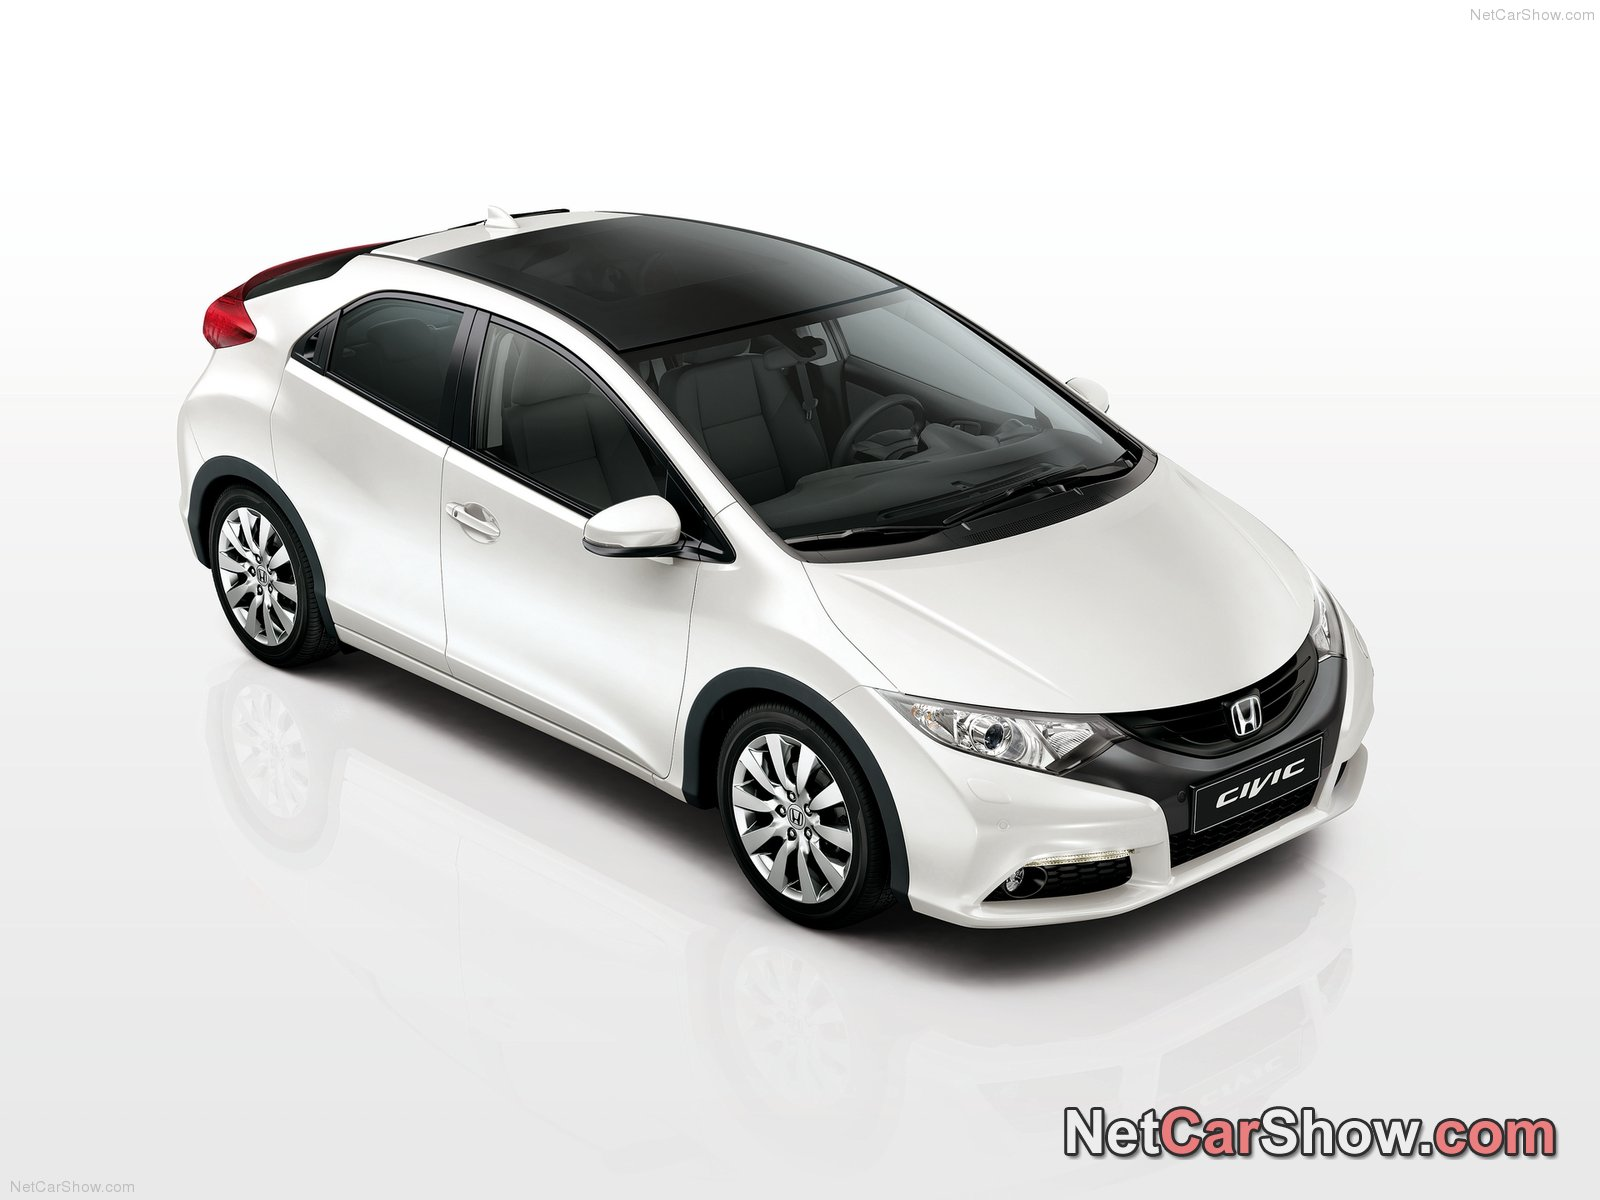 Honda Civic 5 Door Hatchback 2012